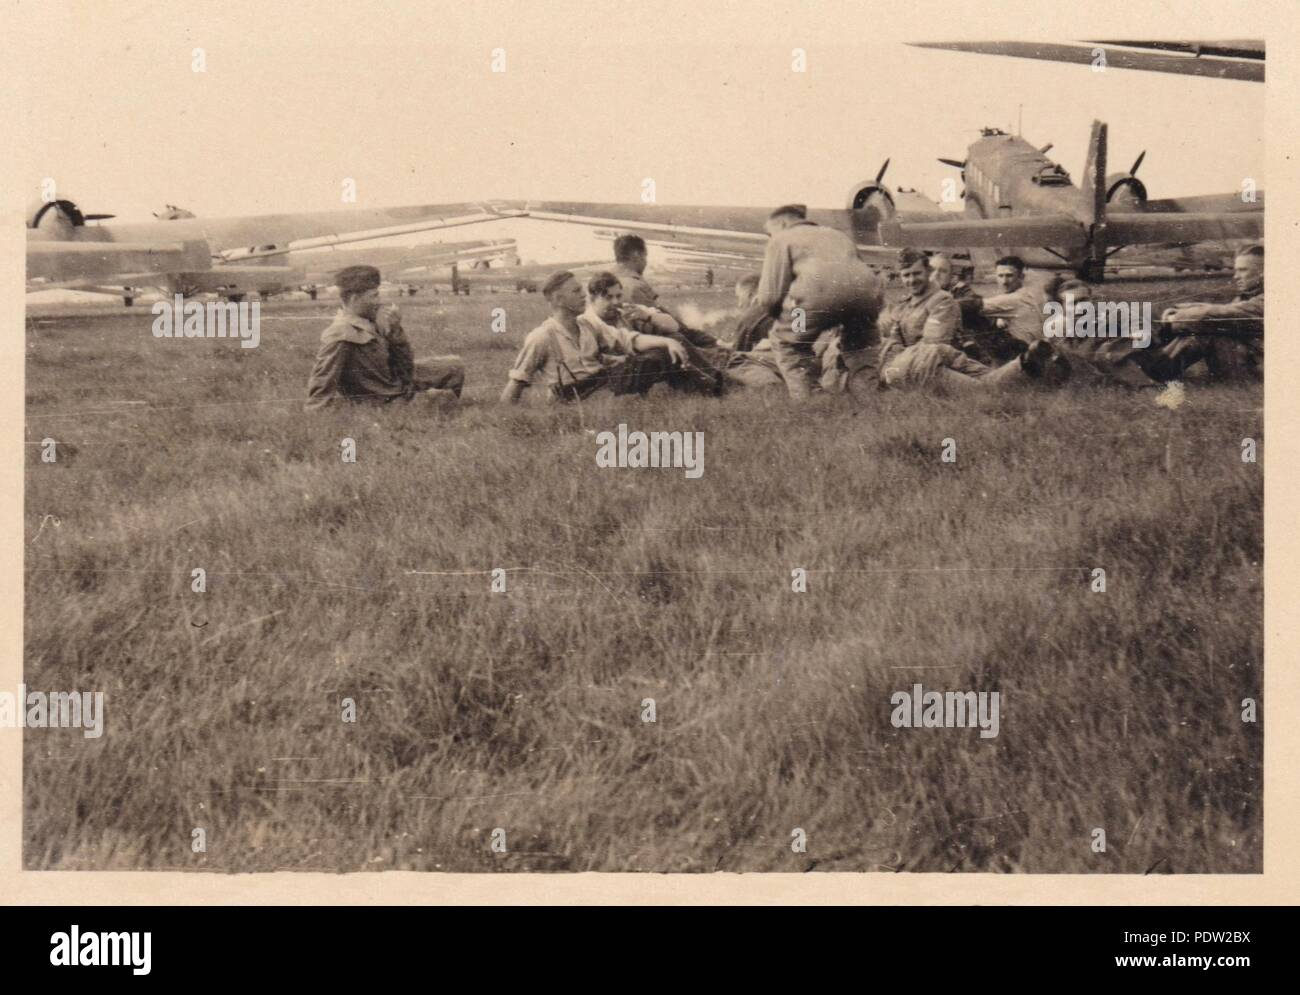 Image from the photo album of Oberfeldwebel Karl Gendner of 1. Staffel, Kampfgeschwader 40: Karl Gendner (third from left) and other transport crewmen from 3./KGzbV 9 relax between missions beside their Junkers Ju52/3m transport aircraft at Brest-Litovsk Airfield, Poland in September 1939. - Stock Image